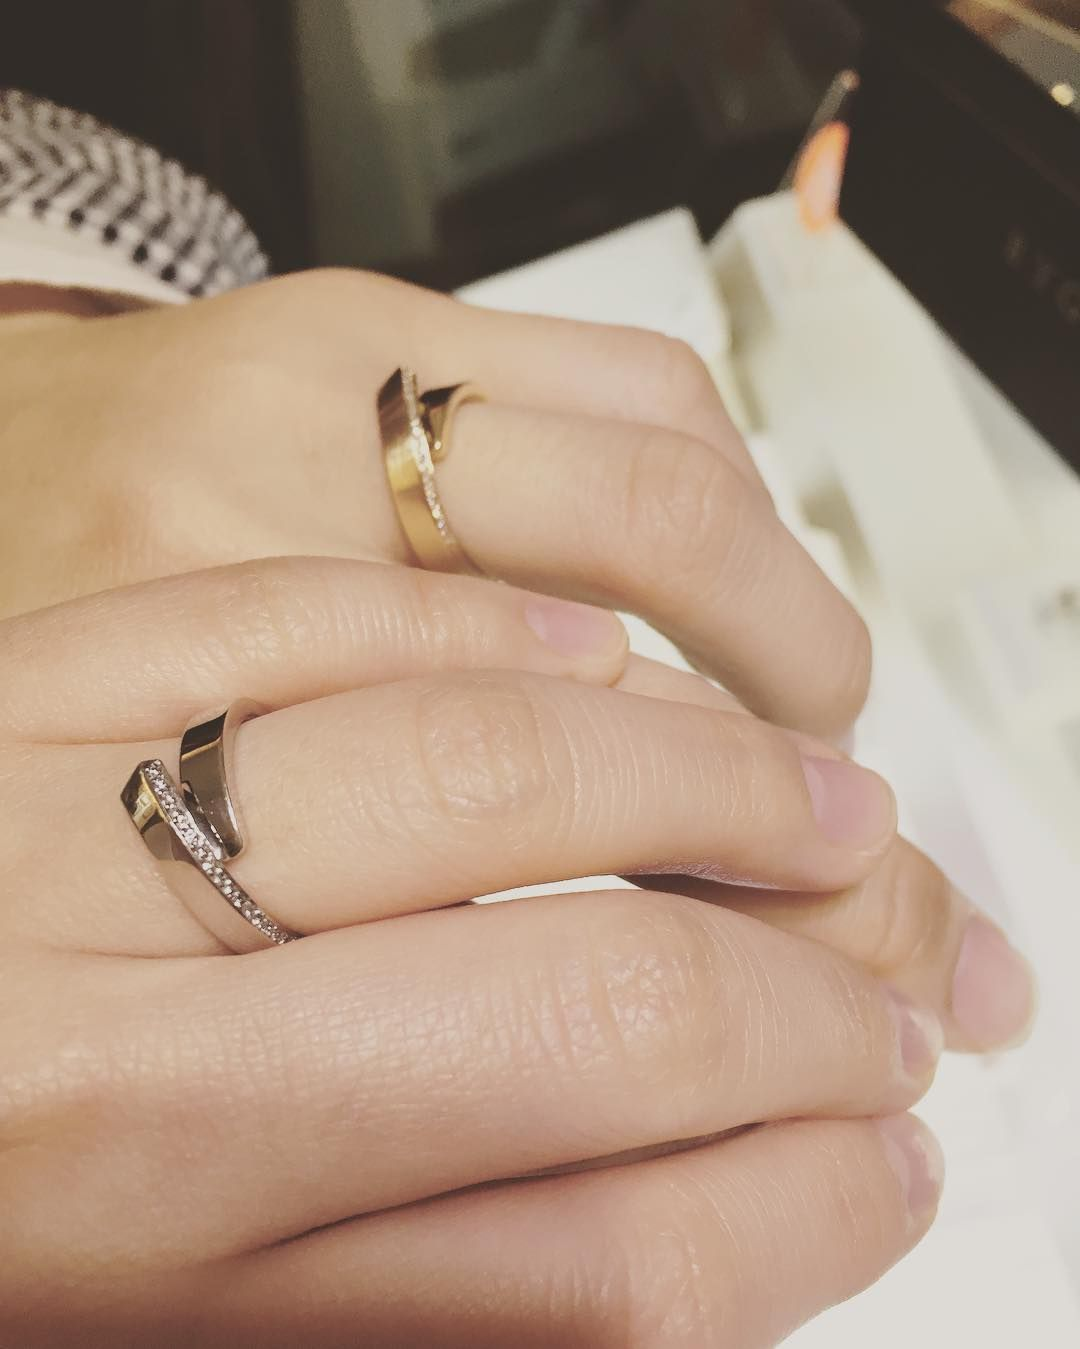 25+ Couples wedding ring sets ideas information